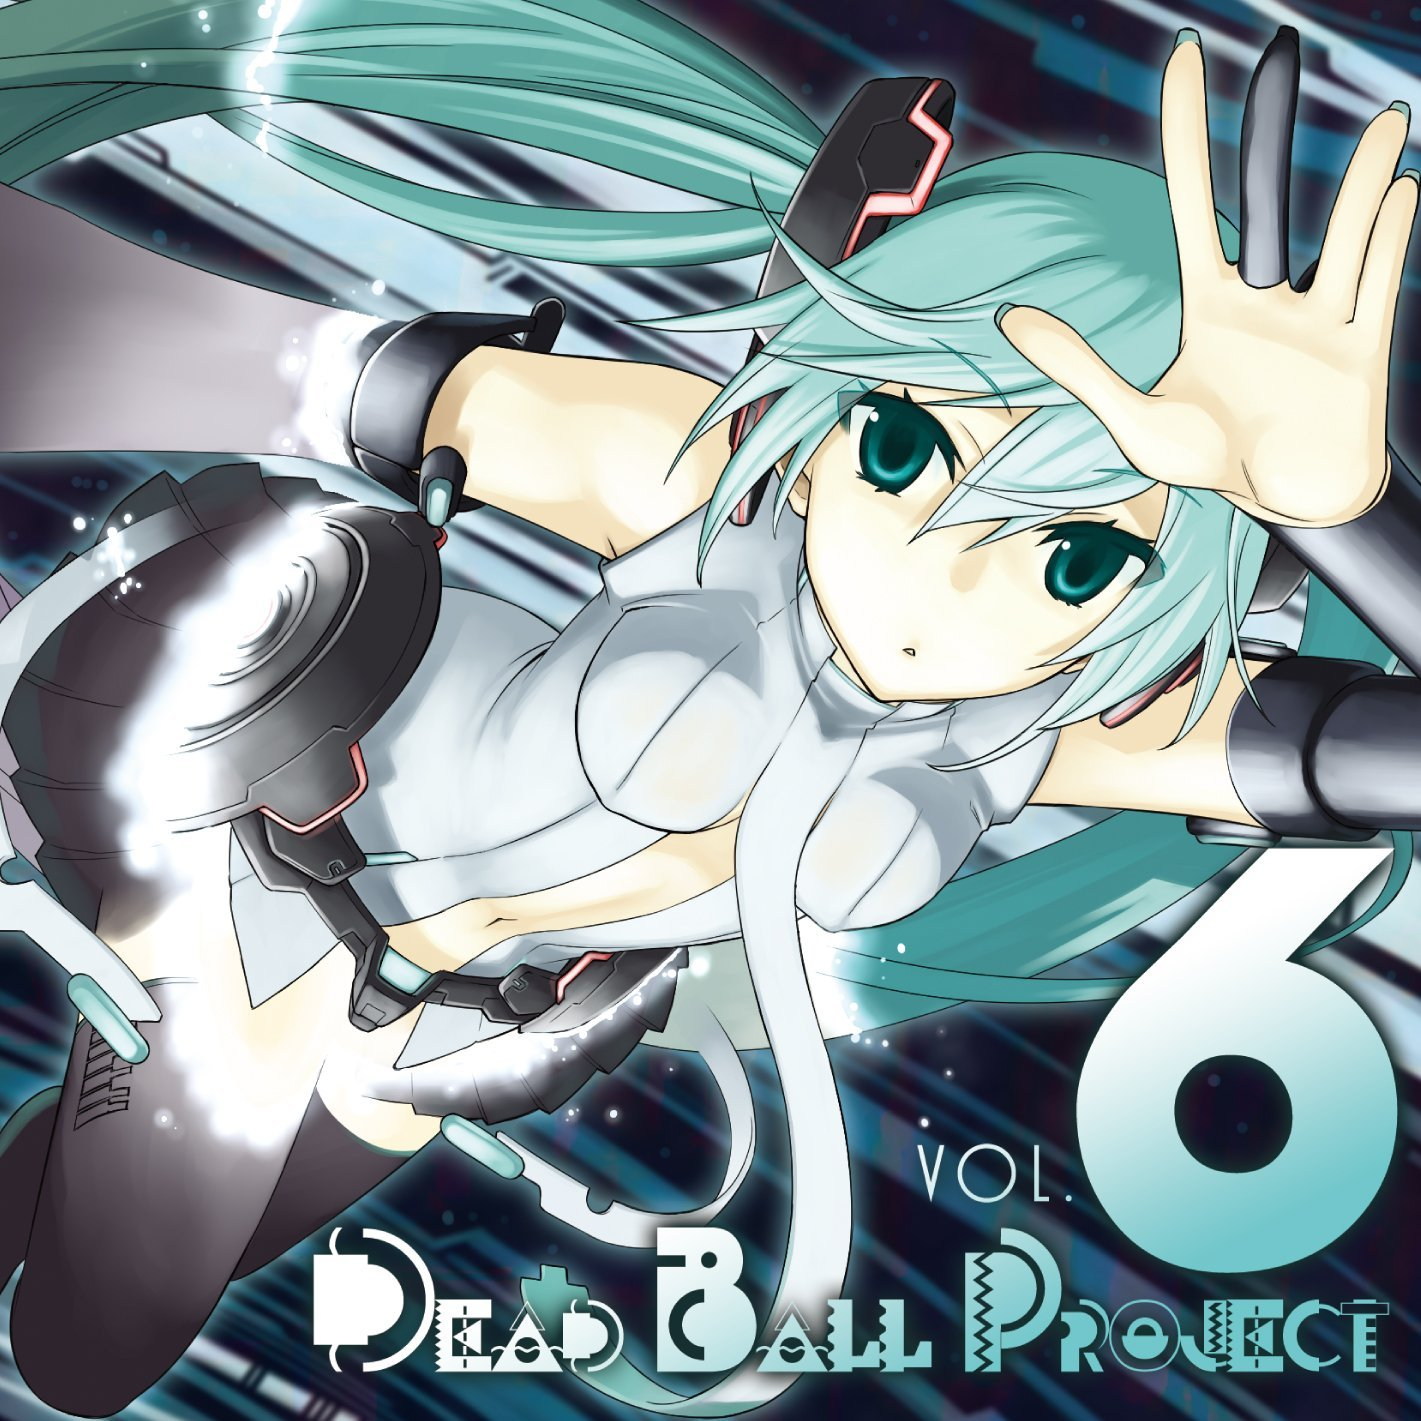 Dead Ball Project vol.7